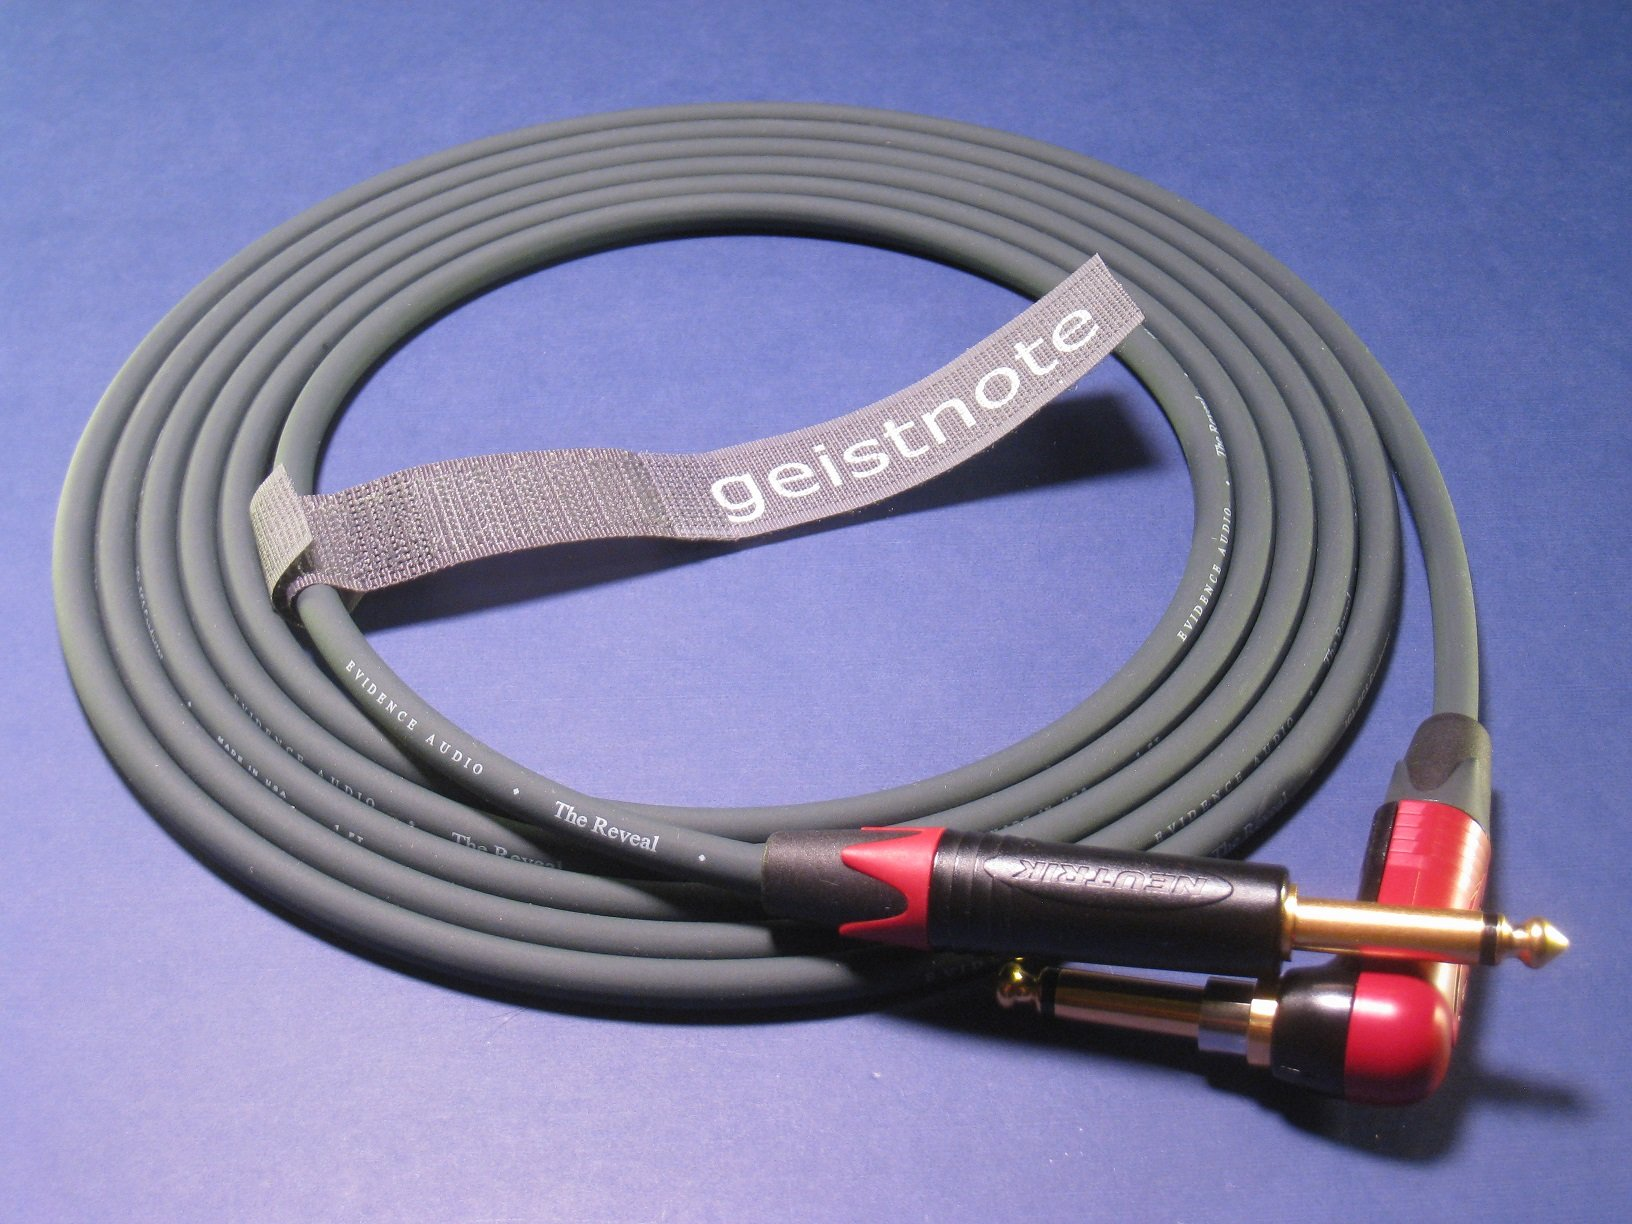 Geistnote's Evidence Audio Reveal Instrument Cable with Neutrik Silent Plug and Gold Connectors 17 Ft (5 M) ~ Right Angle to Straight